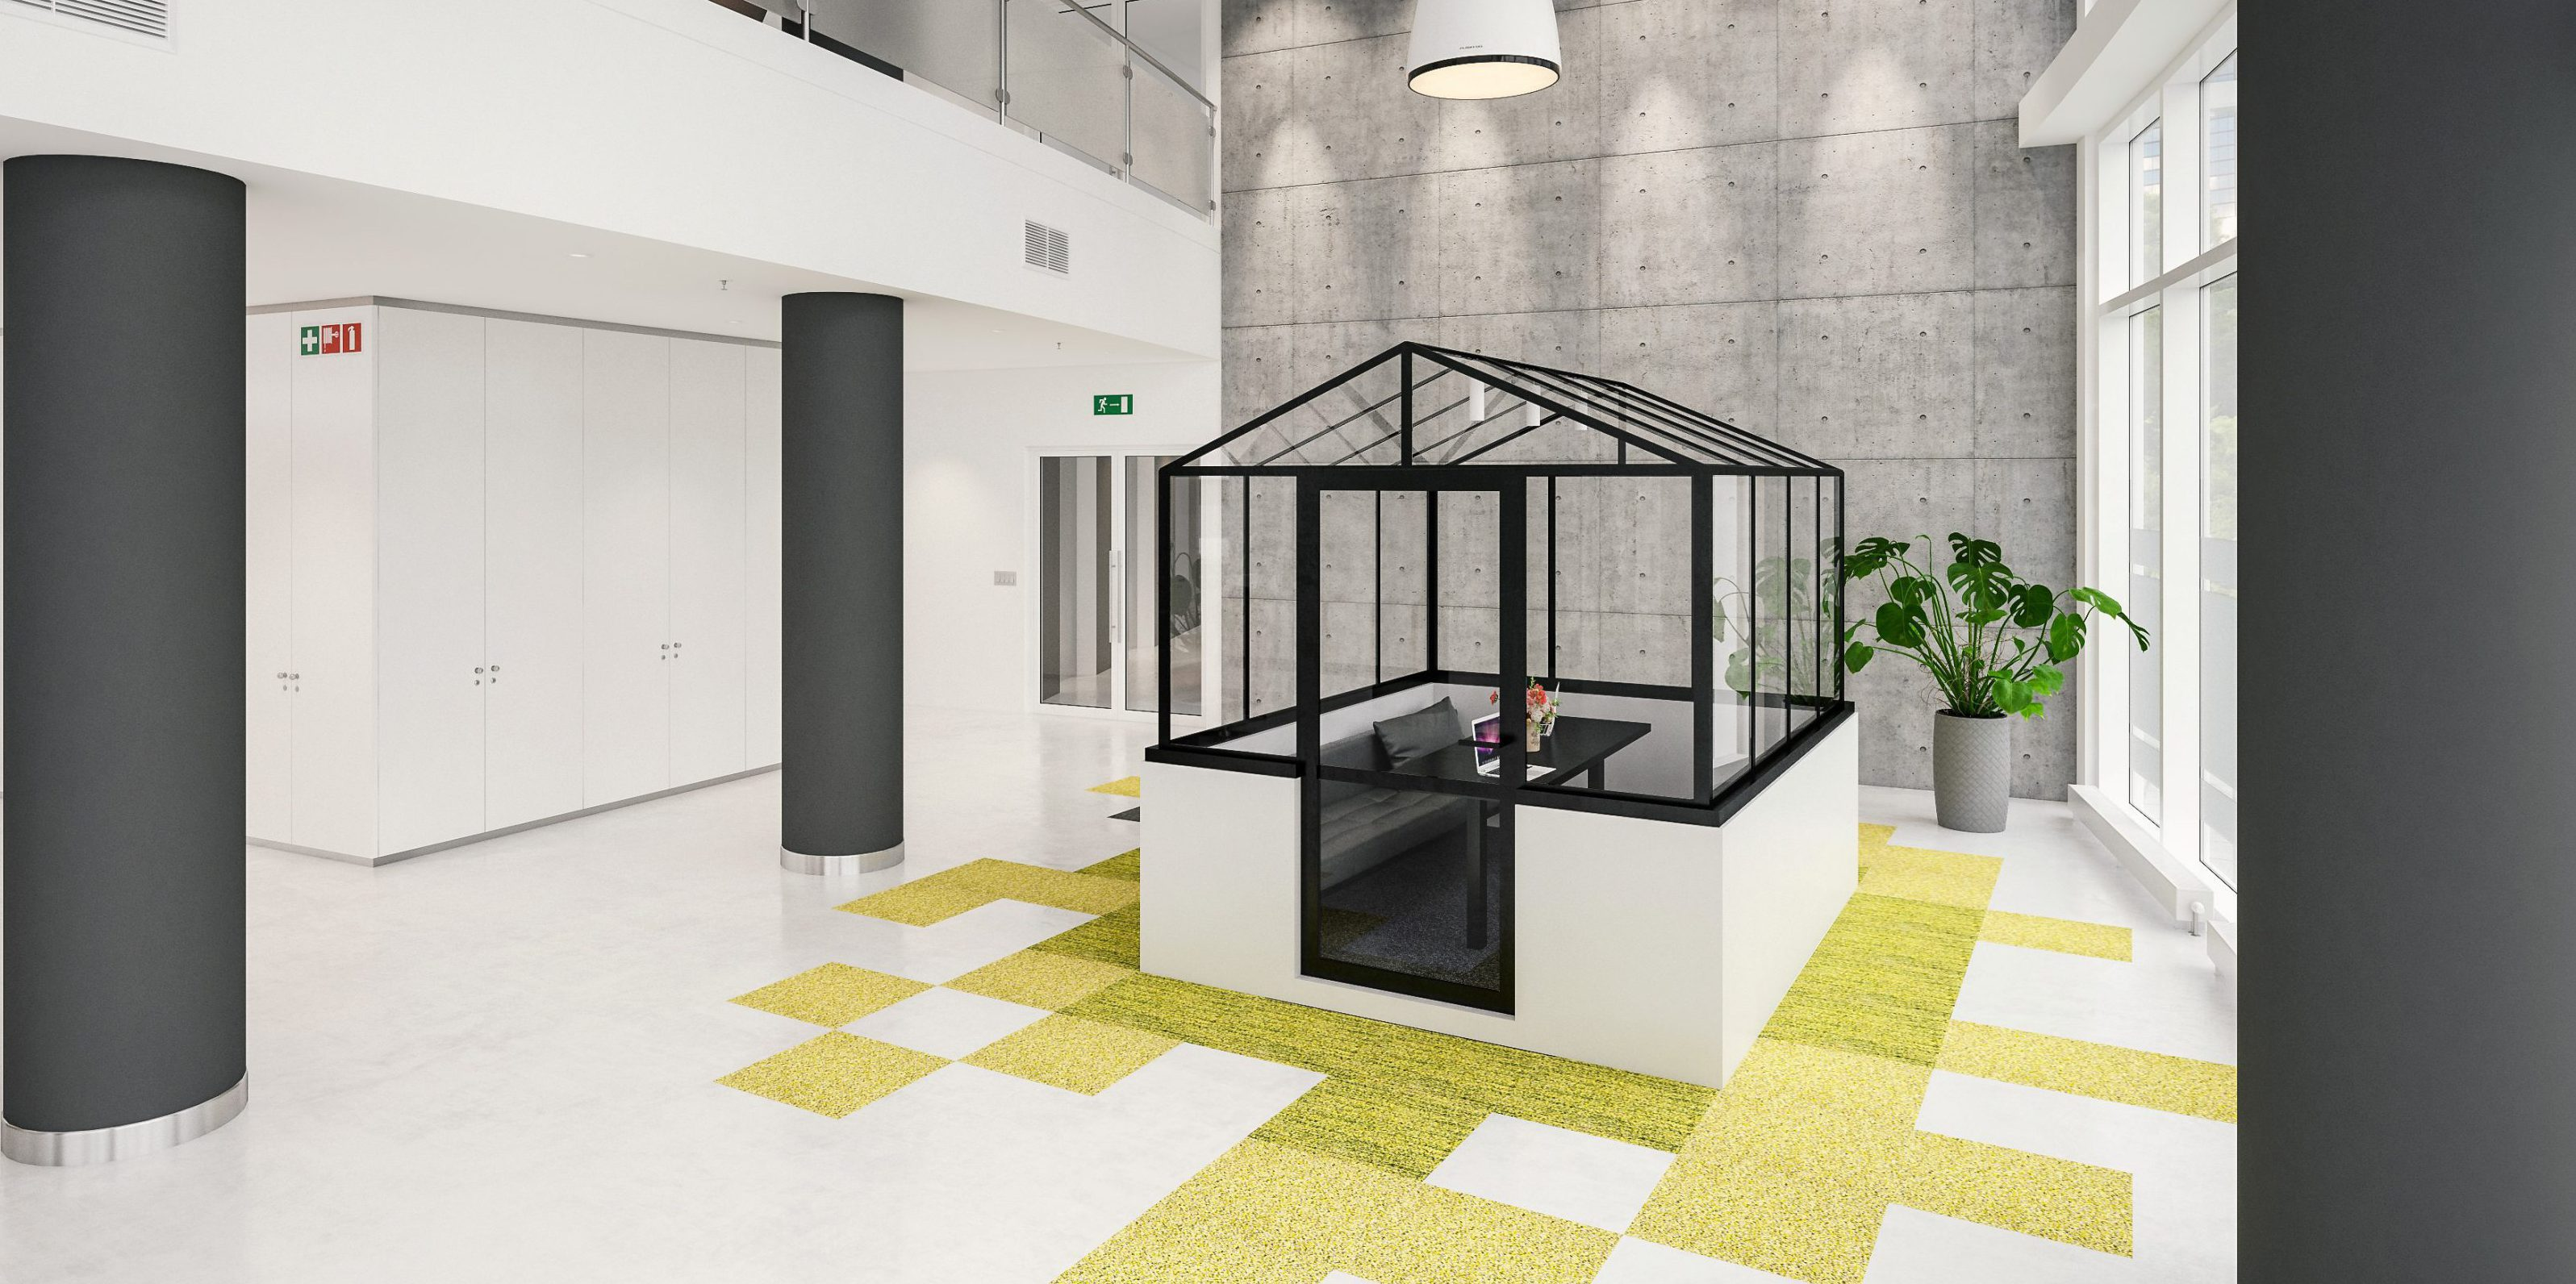 GLABES CoWorking-Module -Modell 2.1